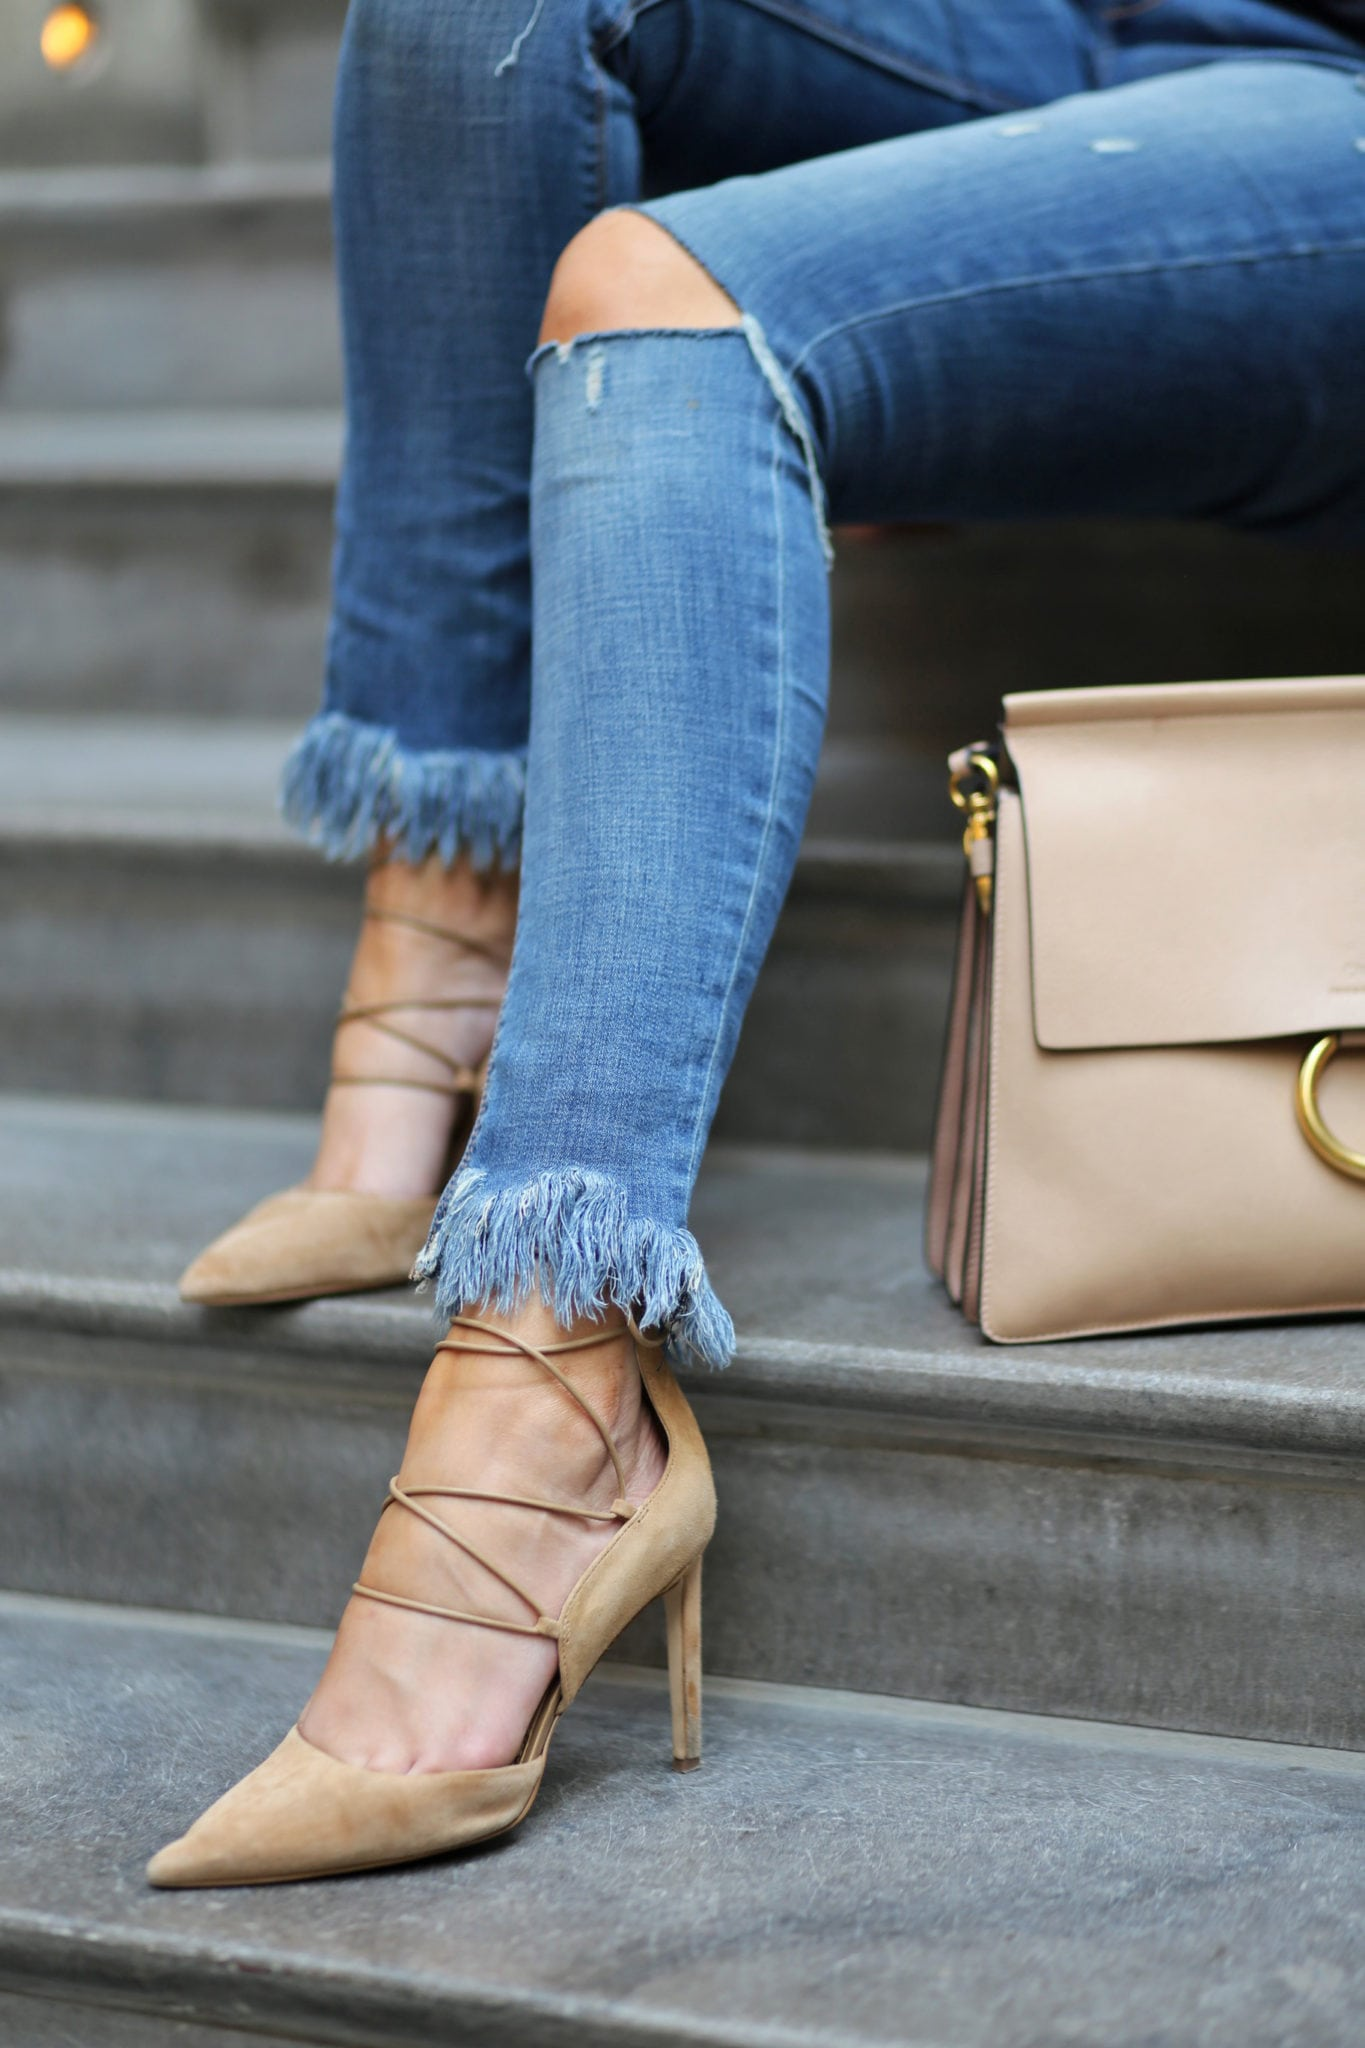 Blogger Mash Elle how to wear heels all day | comfortable heels | suede heels | walking in heels | city heels | frayed jeans | jeans and heels